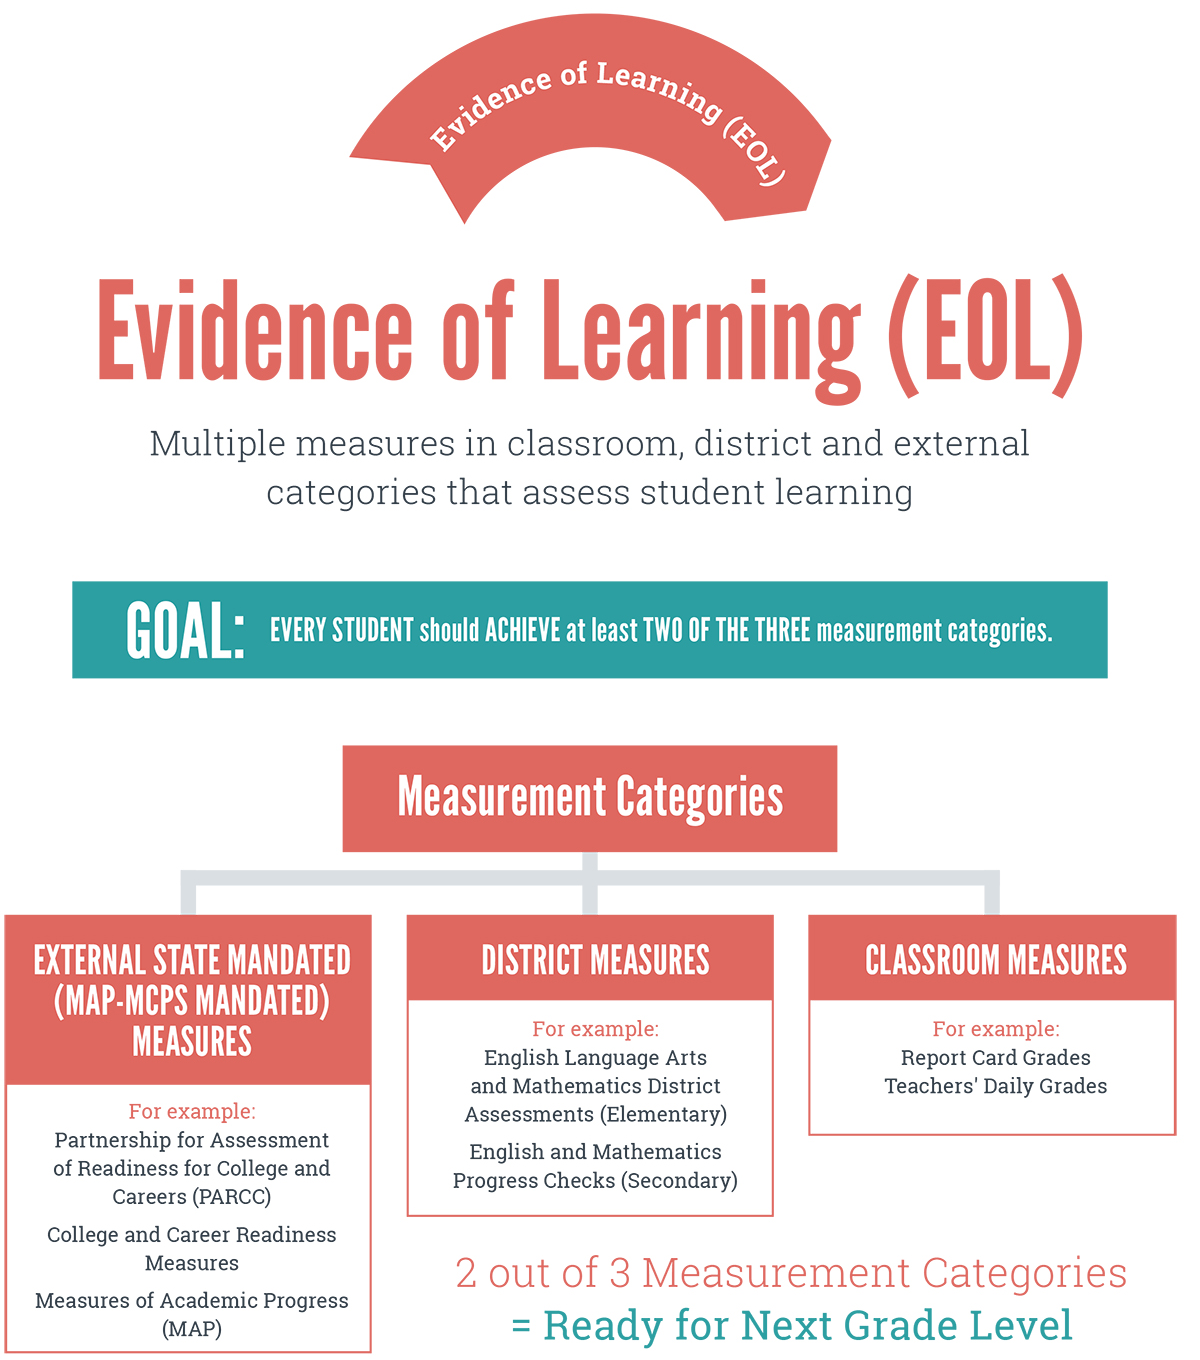 1. Evidence of Learning (EOL) graphic